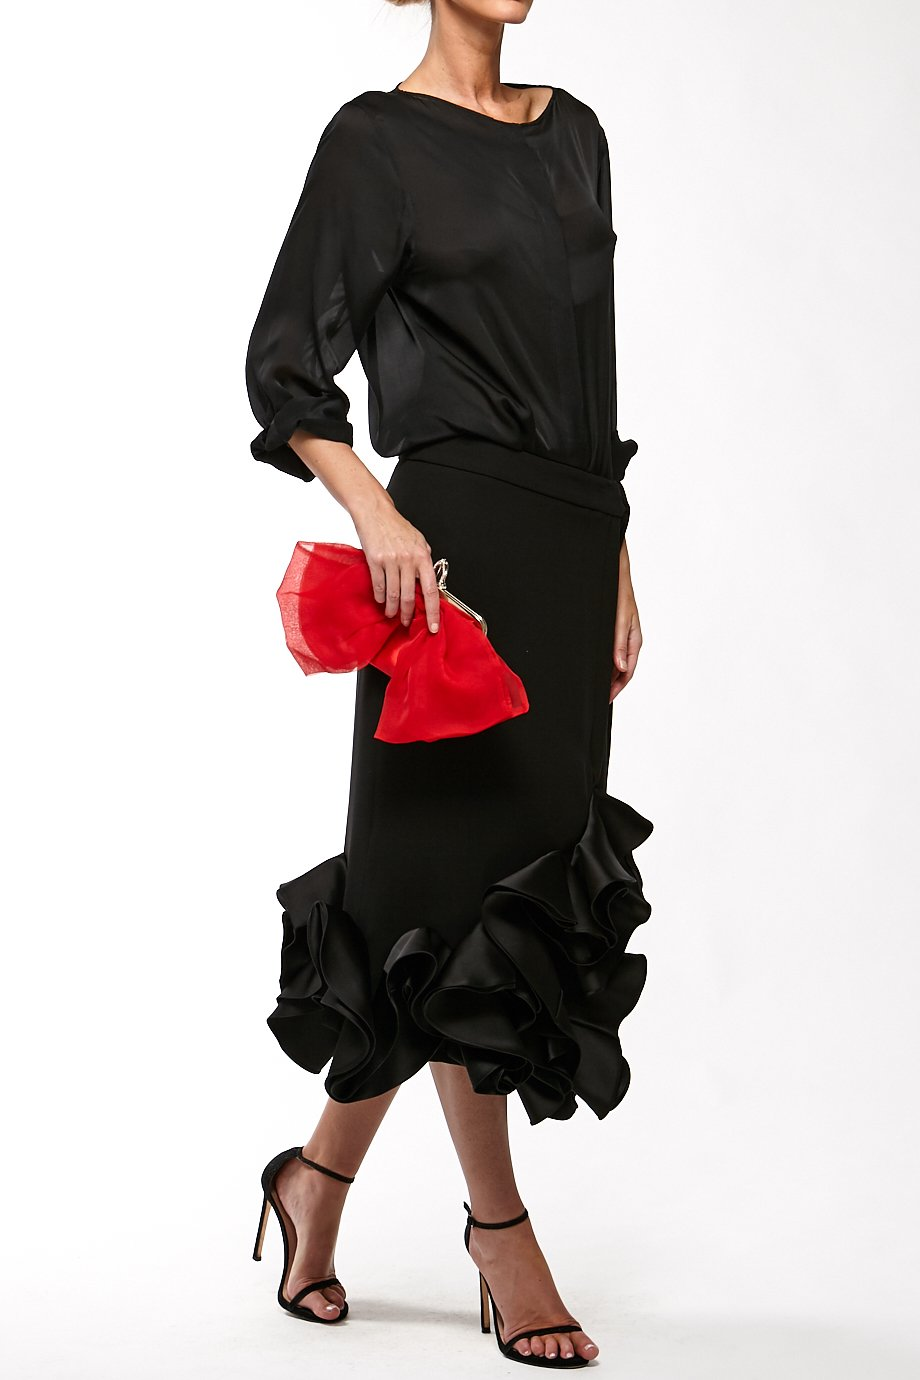 Victoria Beckham Black Ruffled Mermaid Skirt